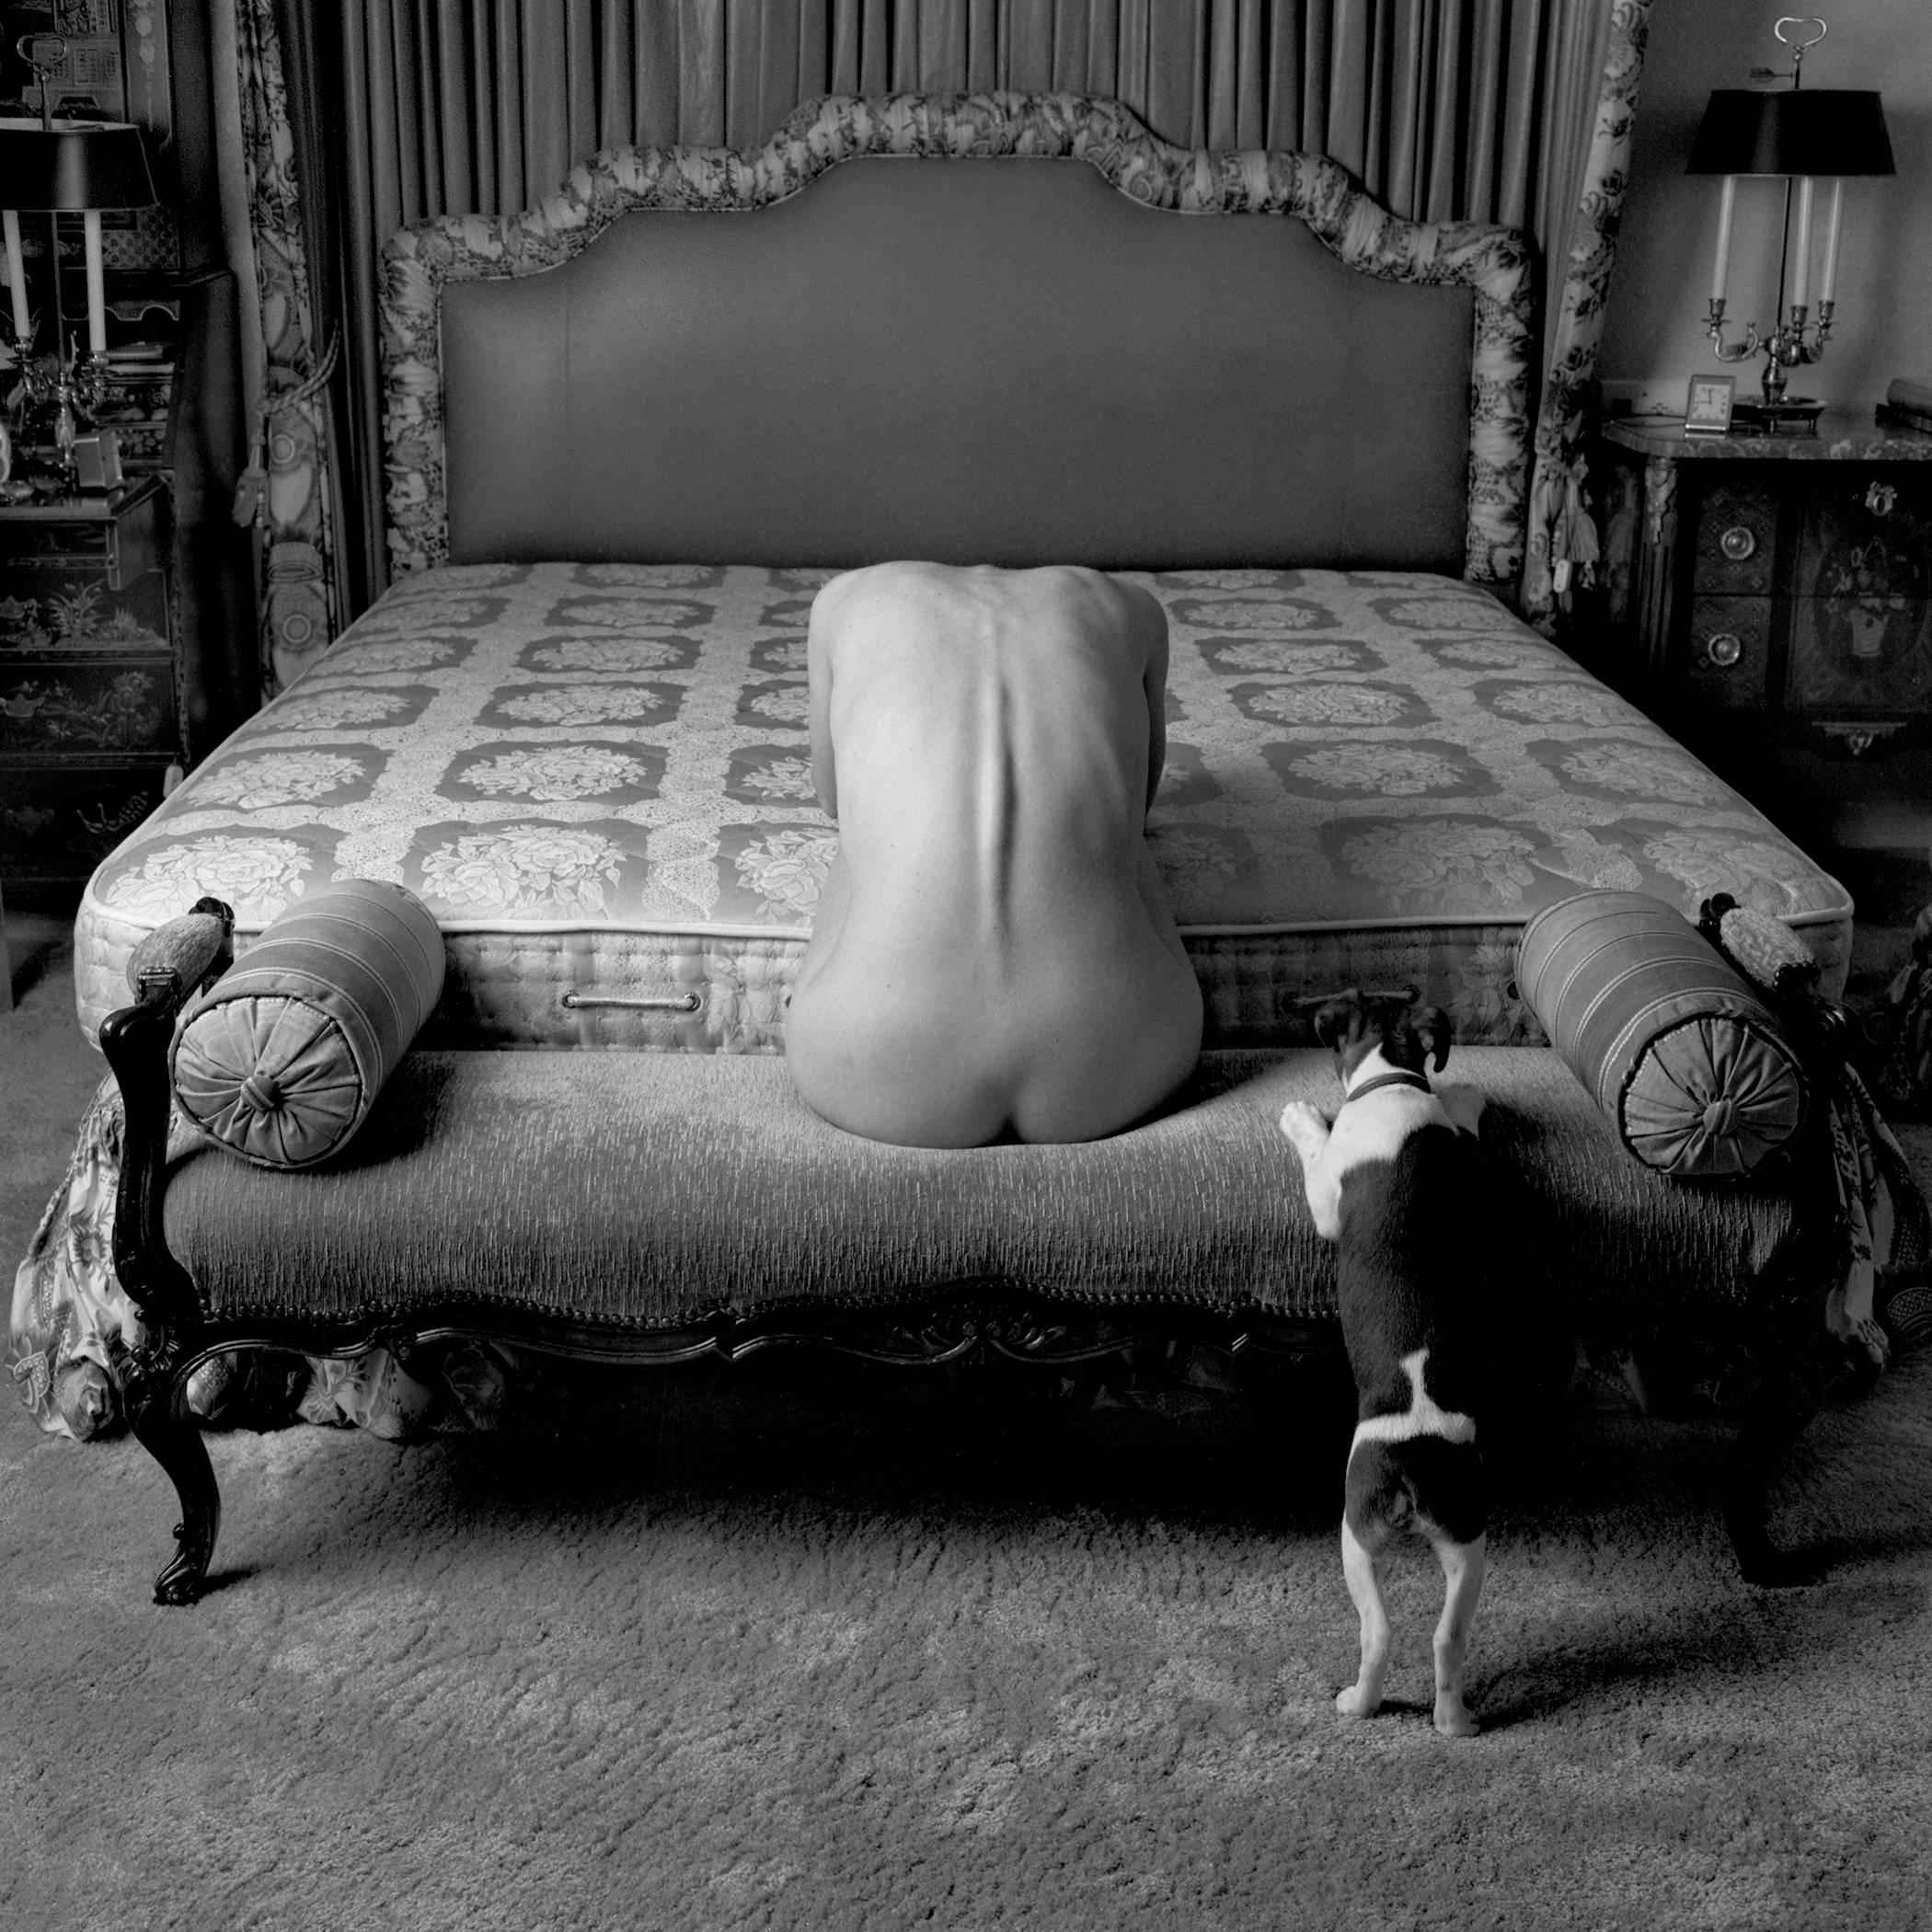 Woman, Dog, Bed